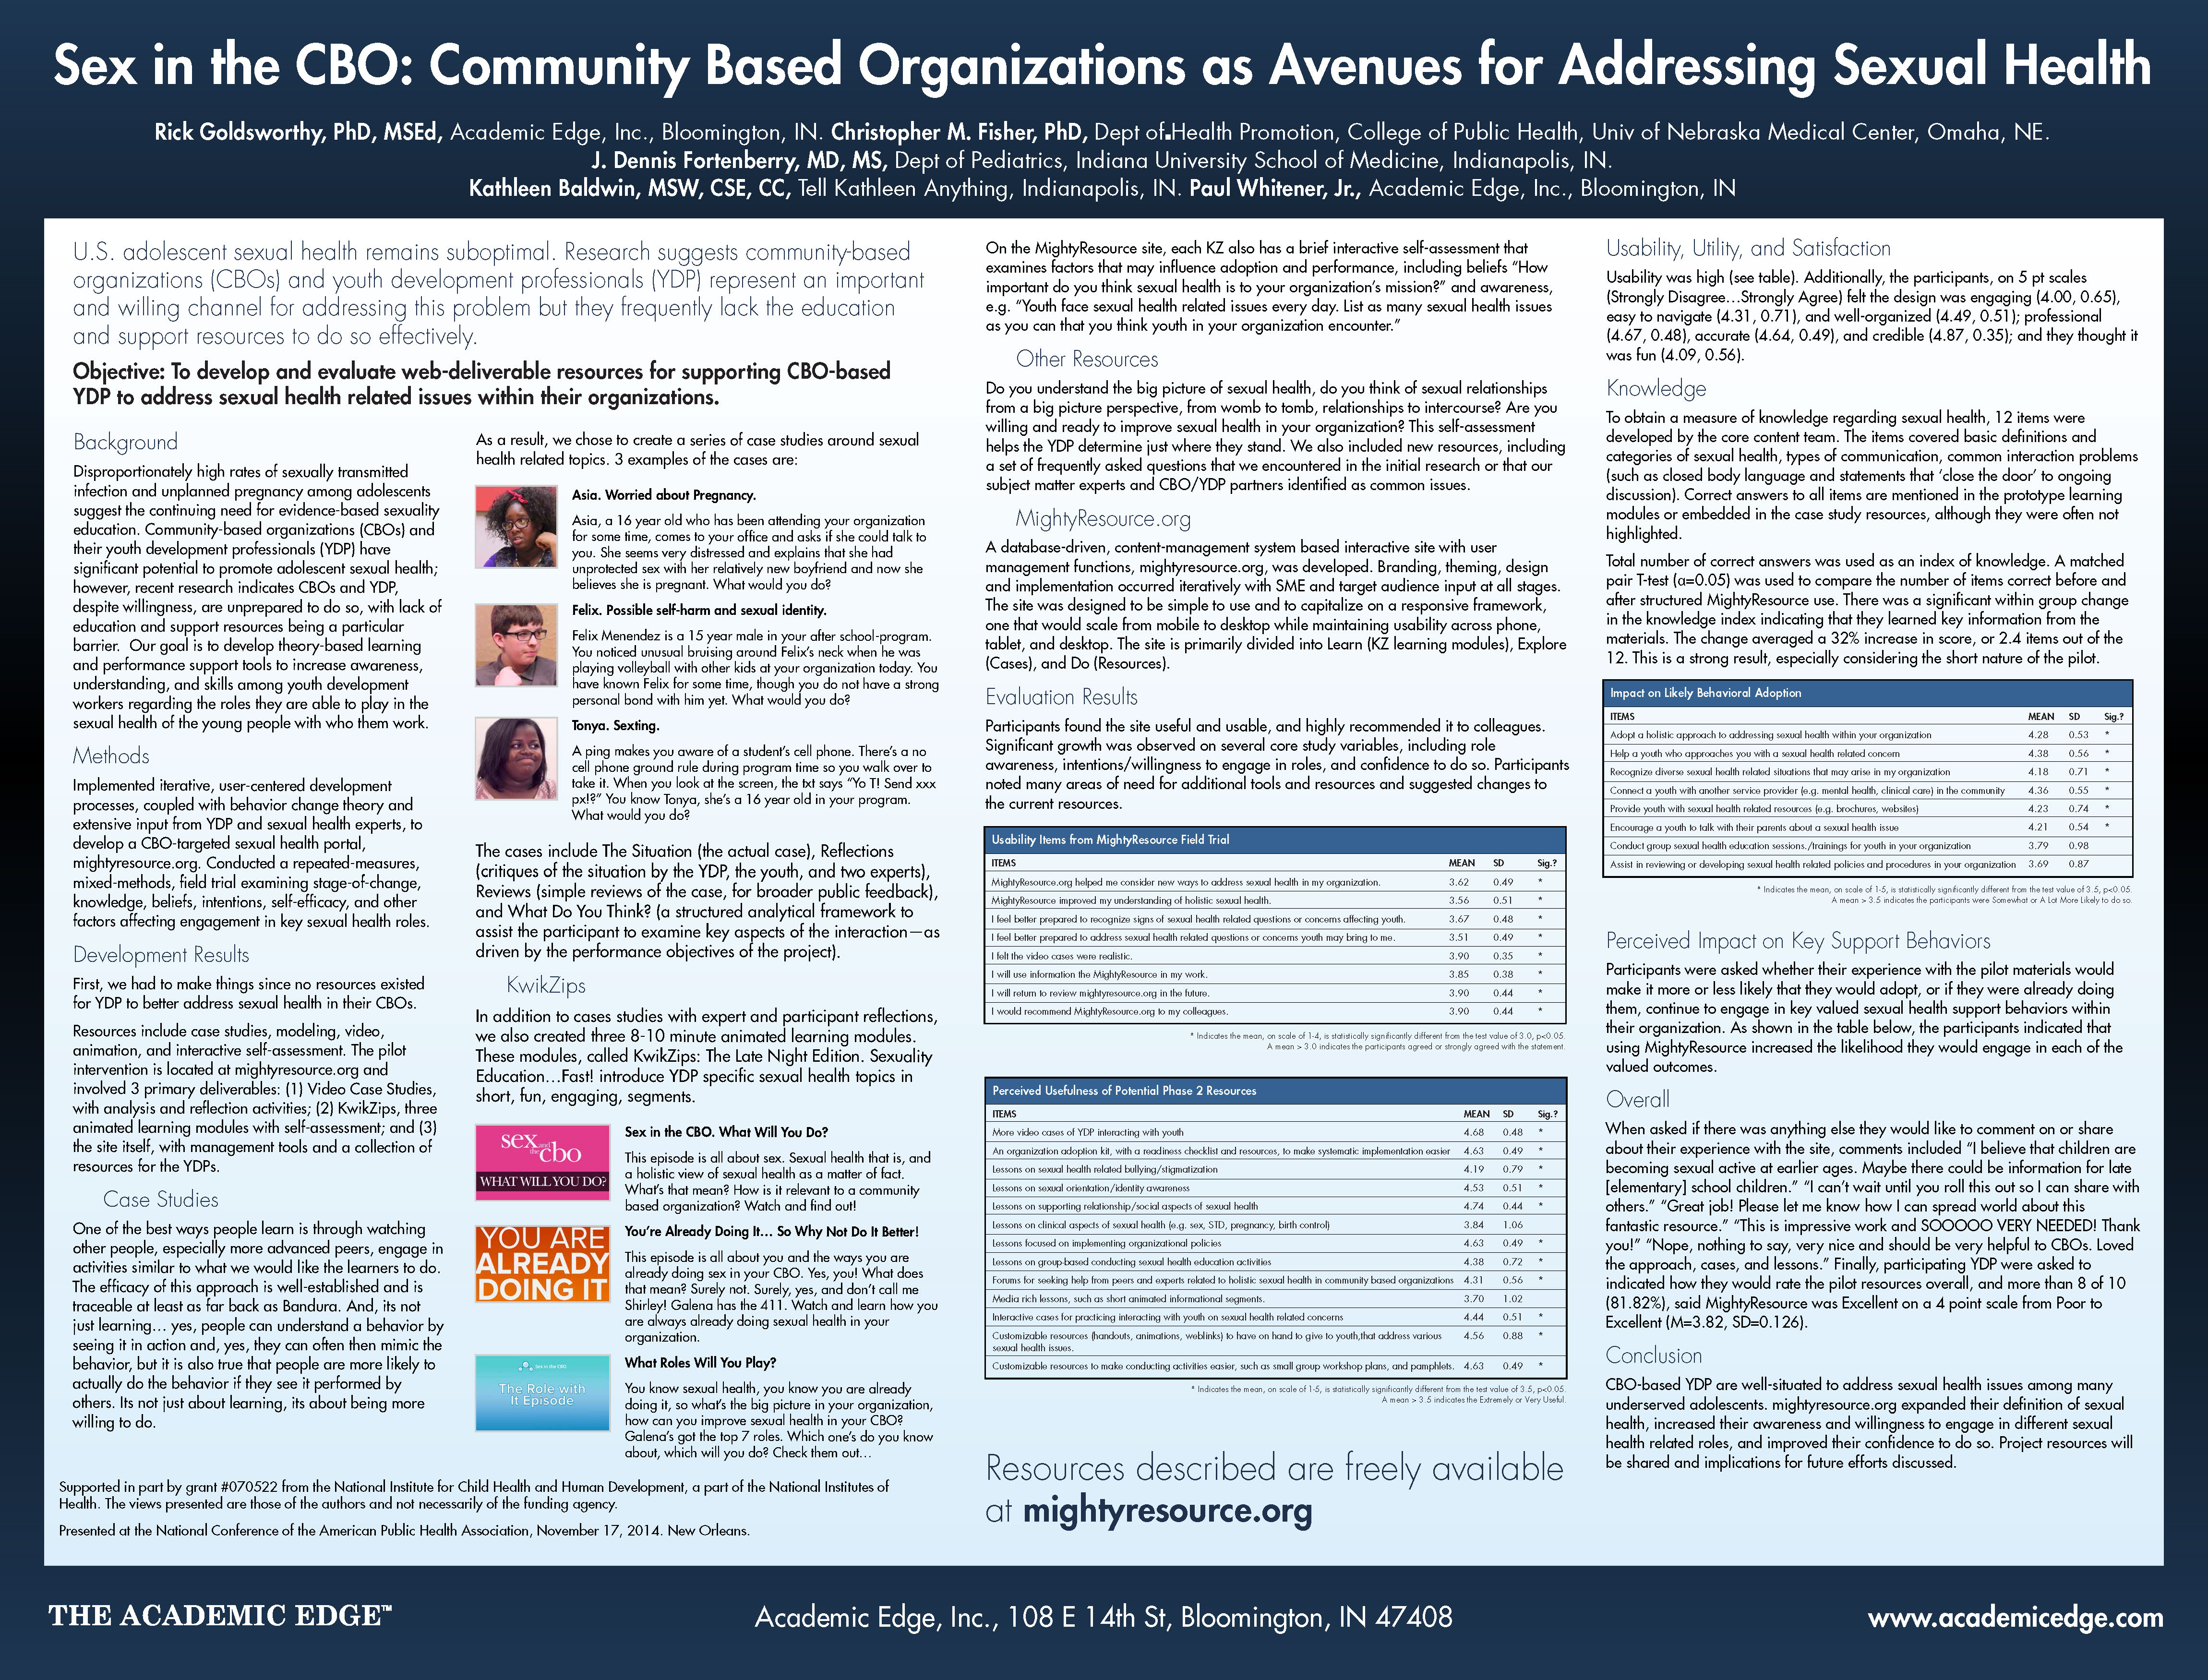 APHA 2014 Sex in CBO poster 141113 handoout